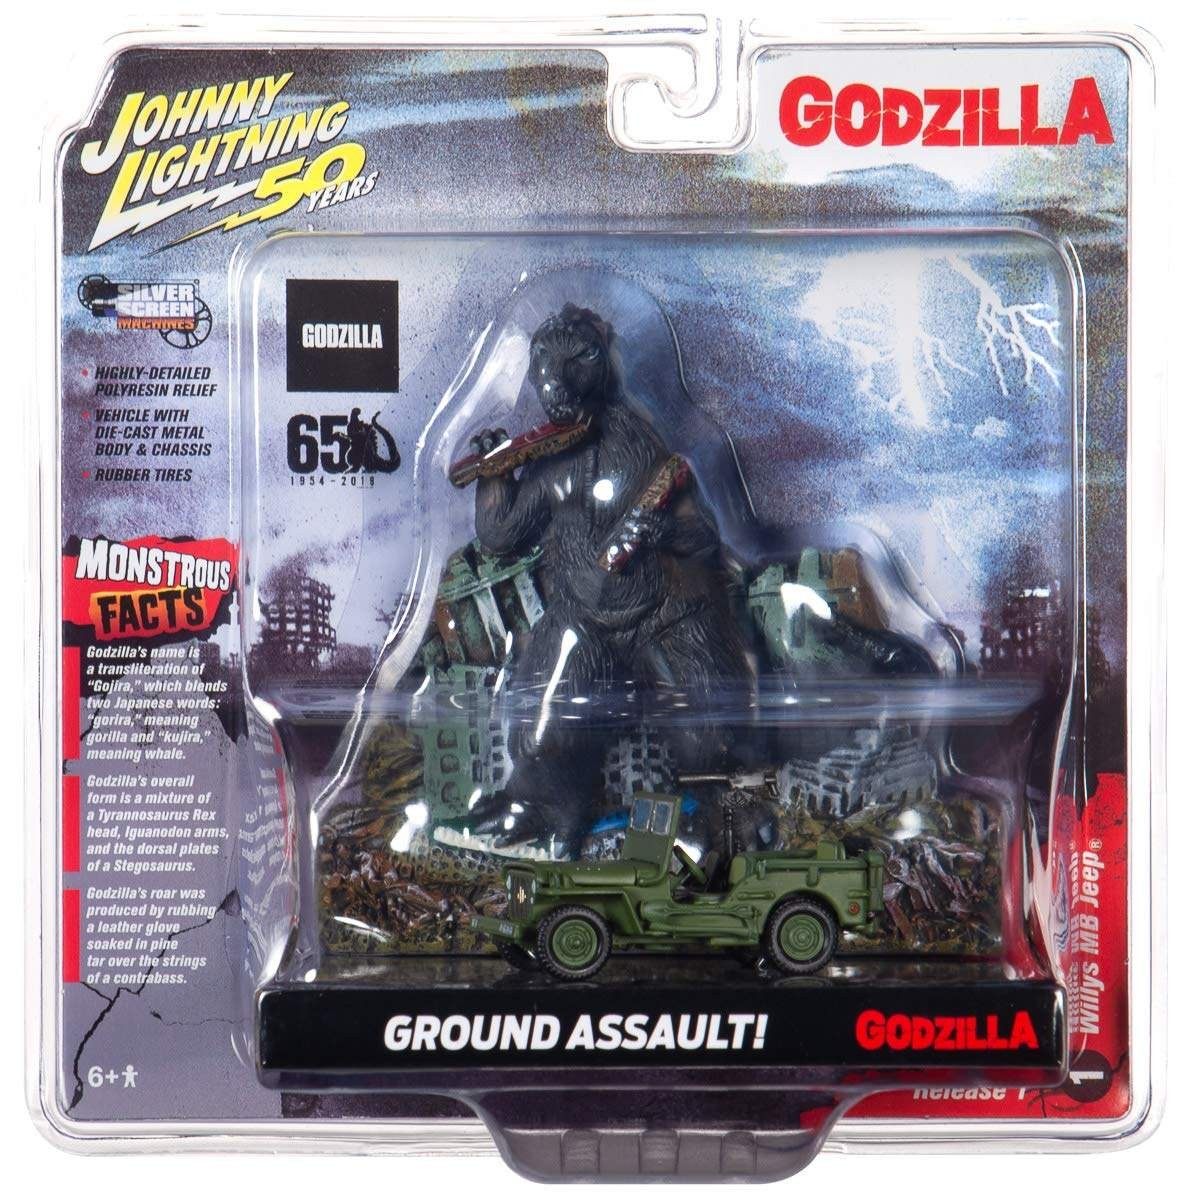 Johnny Lightning Godzilla Silver Screen Series Façade Diorama – Japan Poilce Reserve Corps. Willys MB Jeep